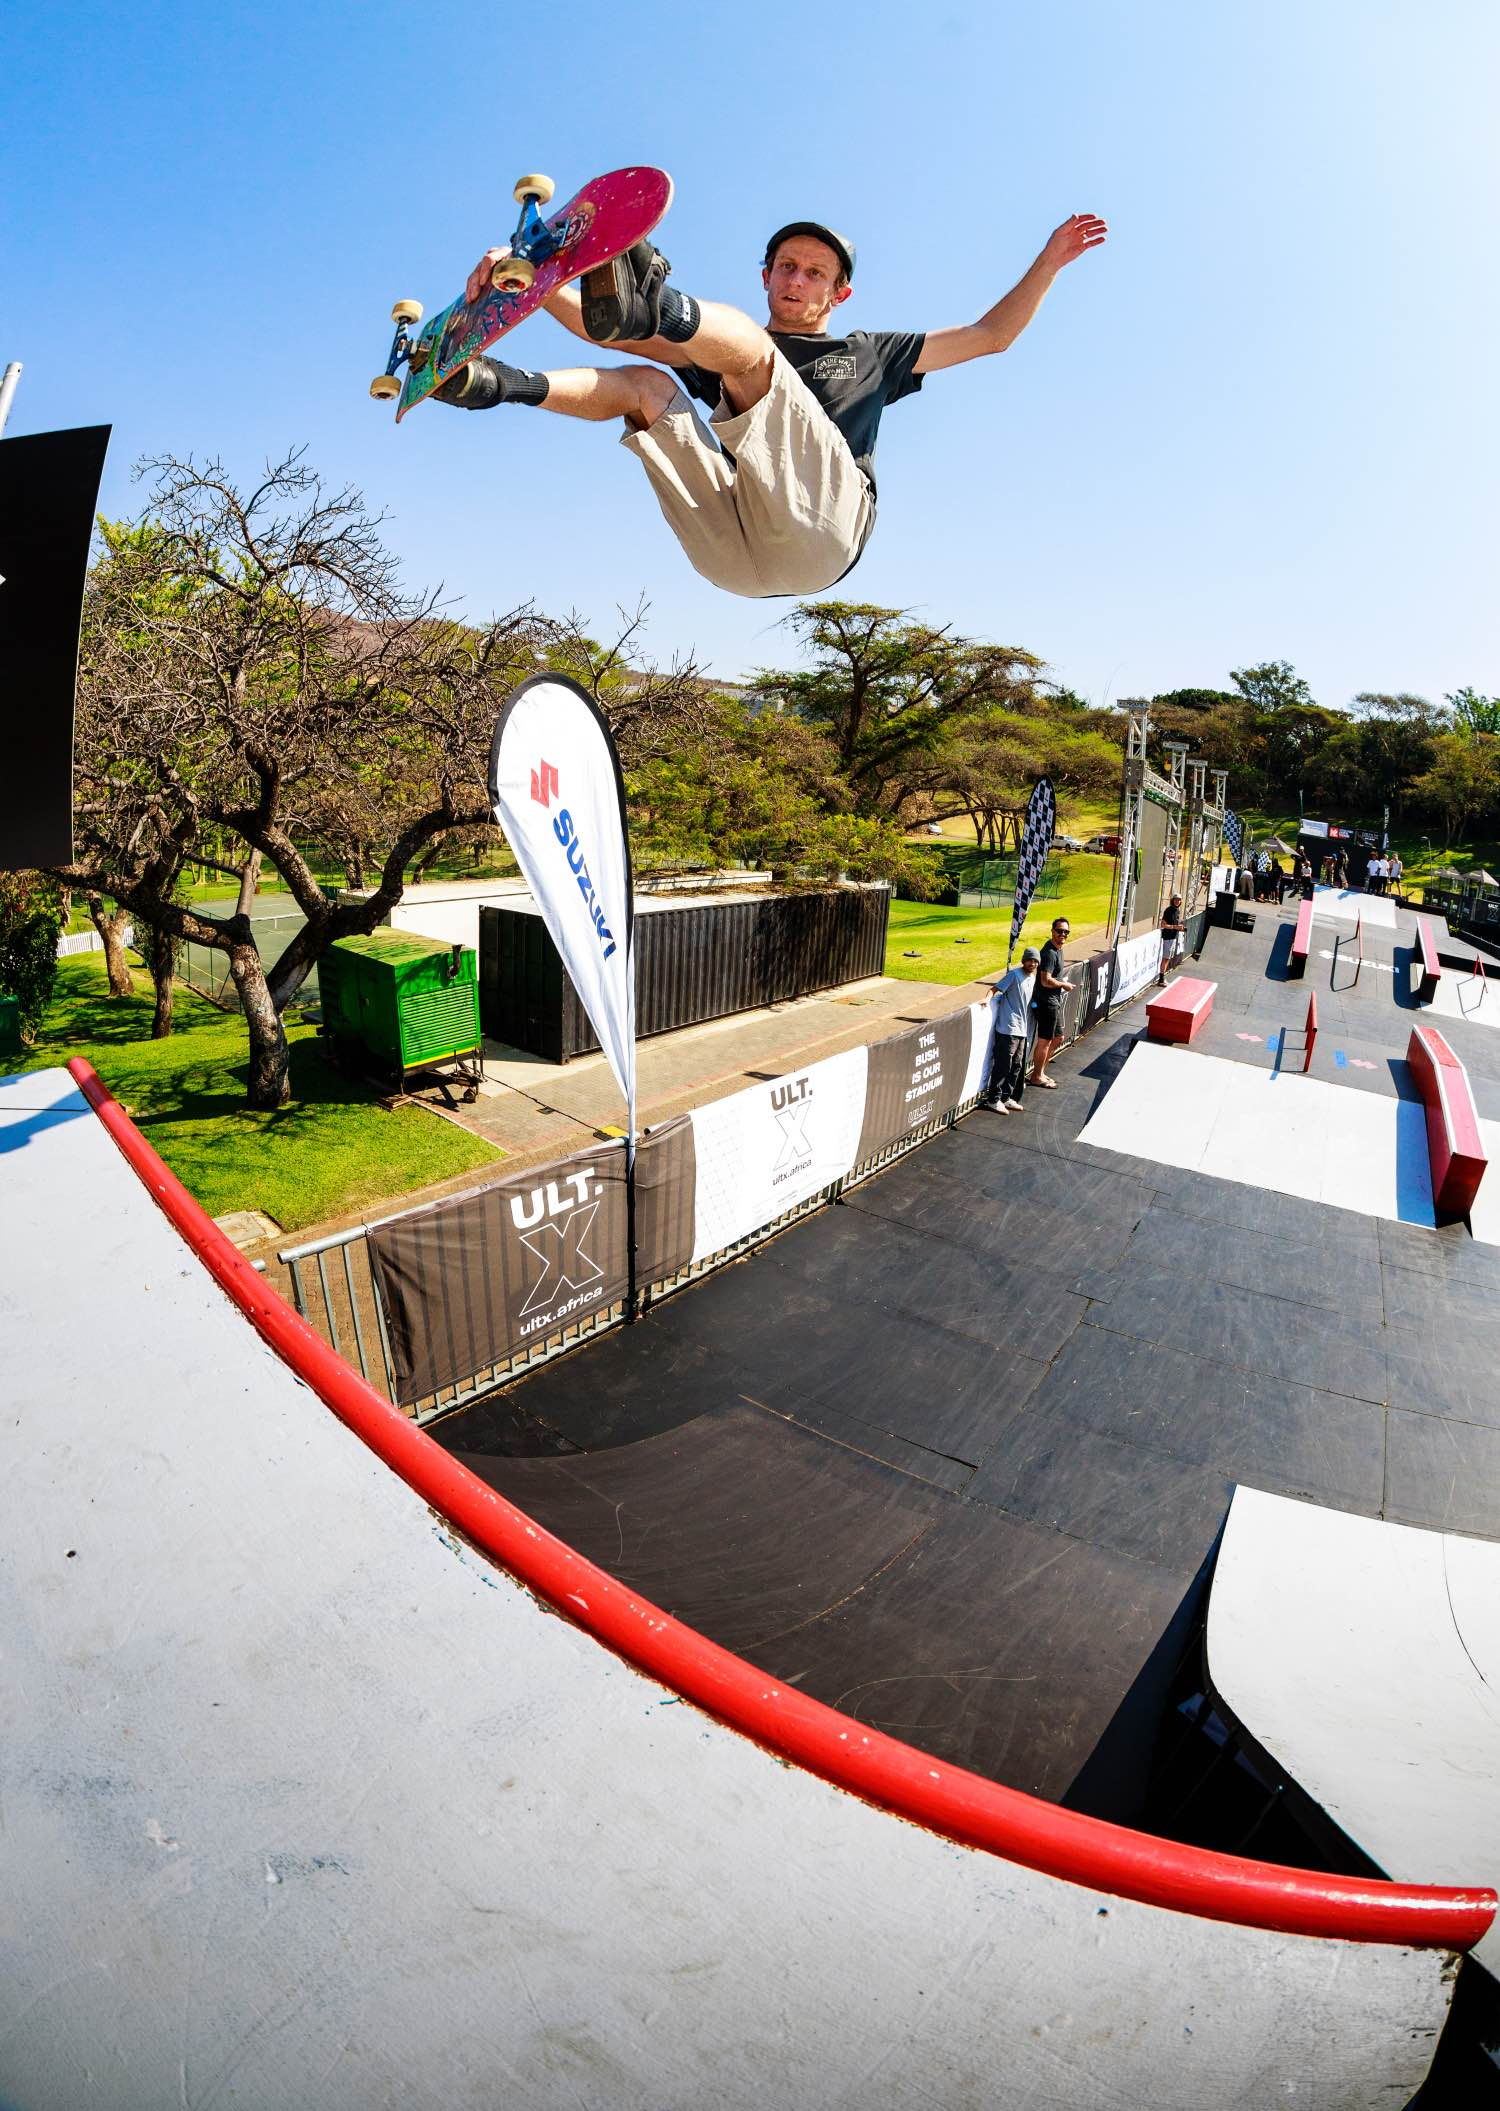 Kalvyn Mac Millan competing in the Skate contest at ULT.X 2021